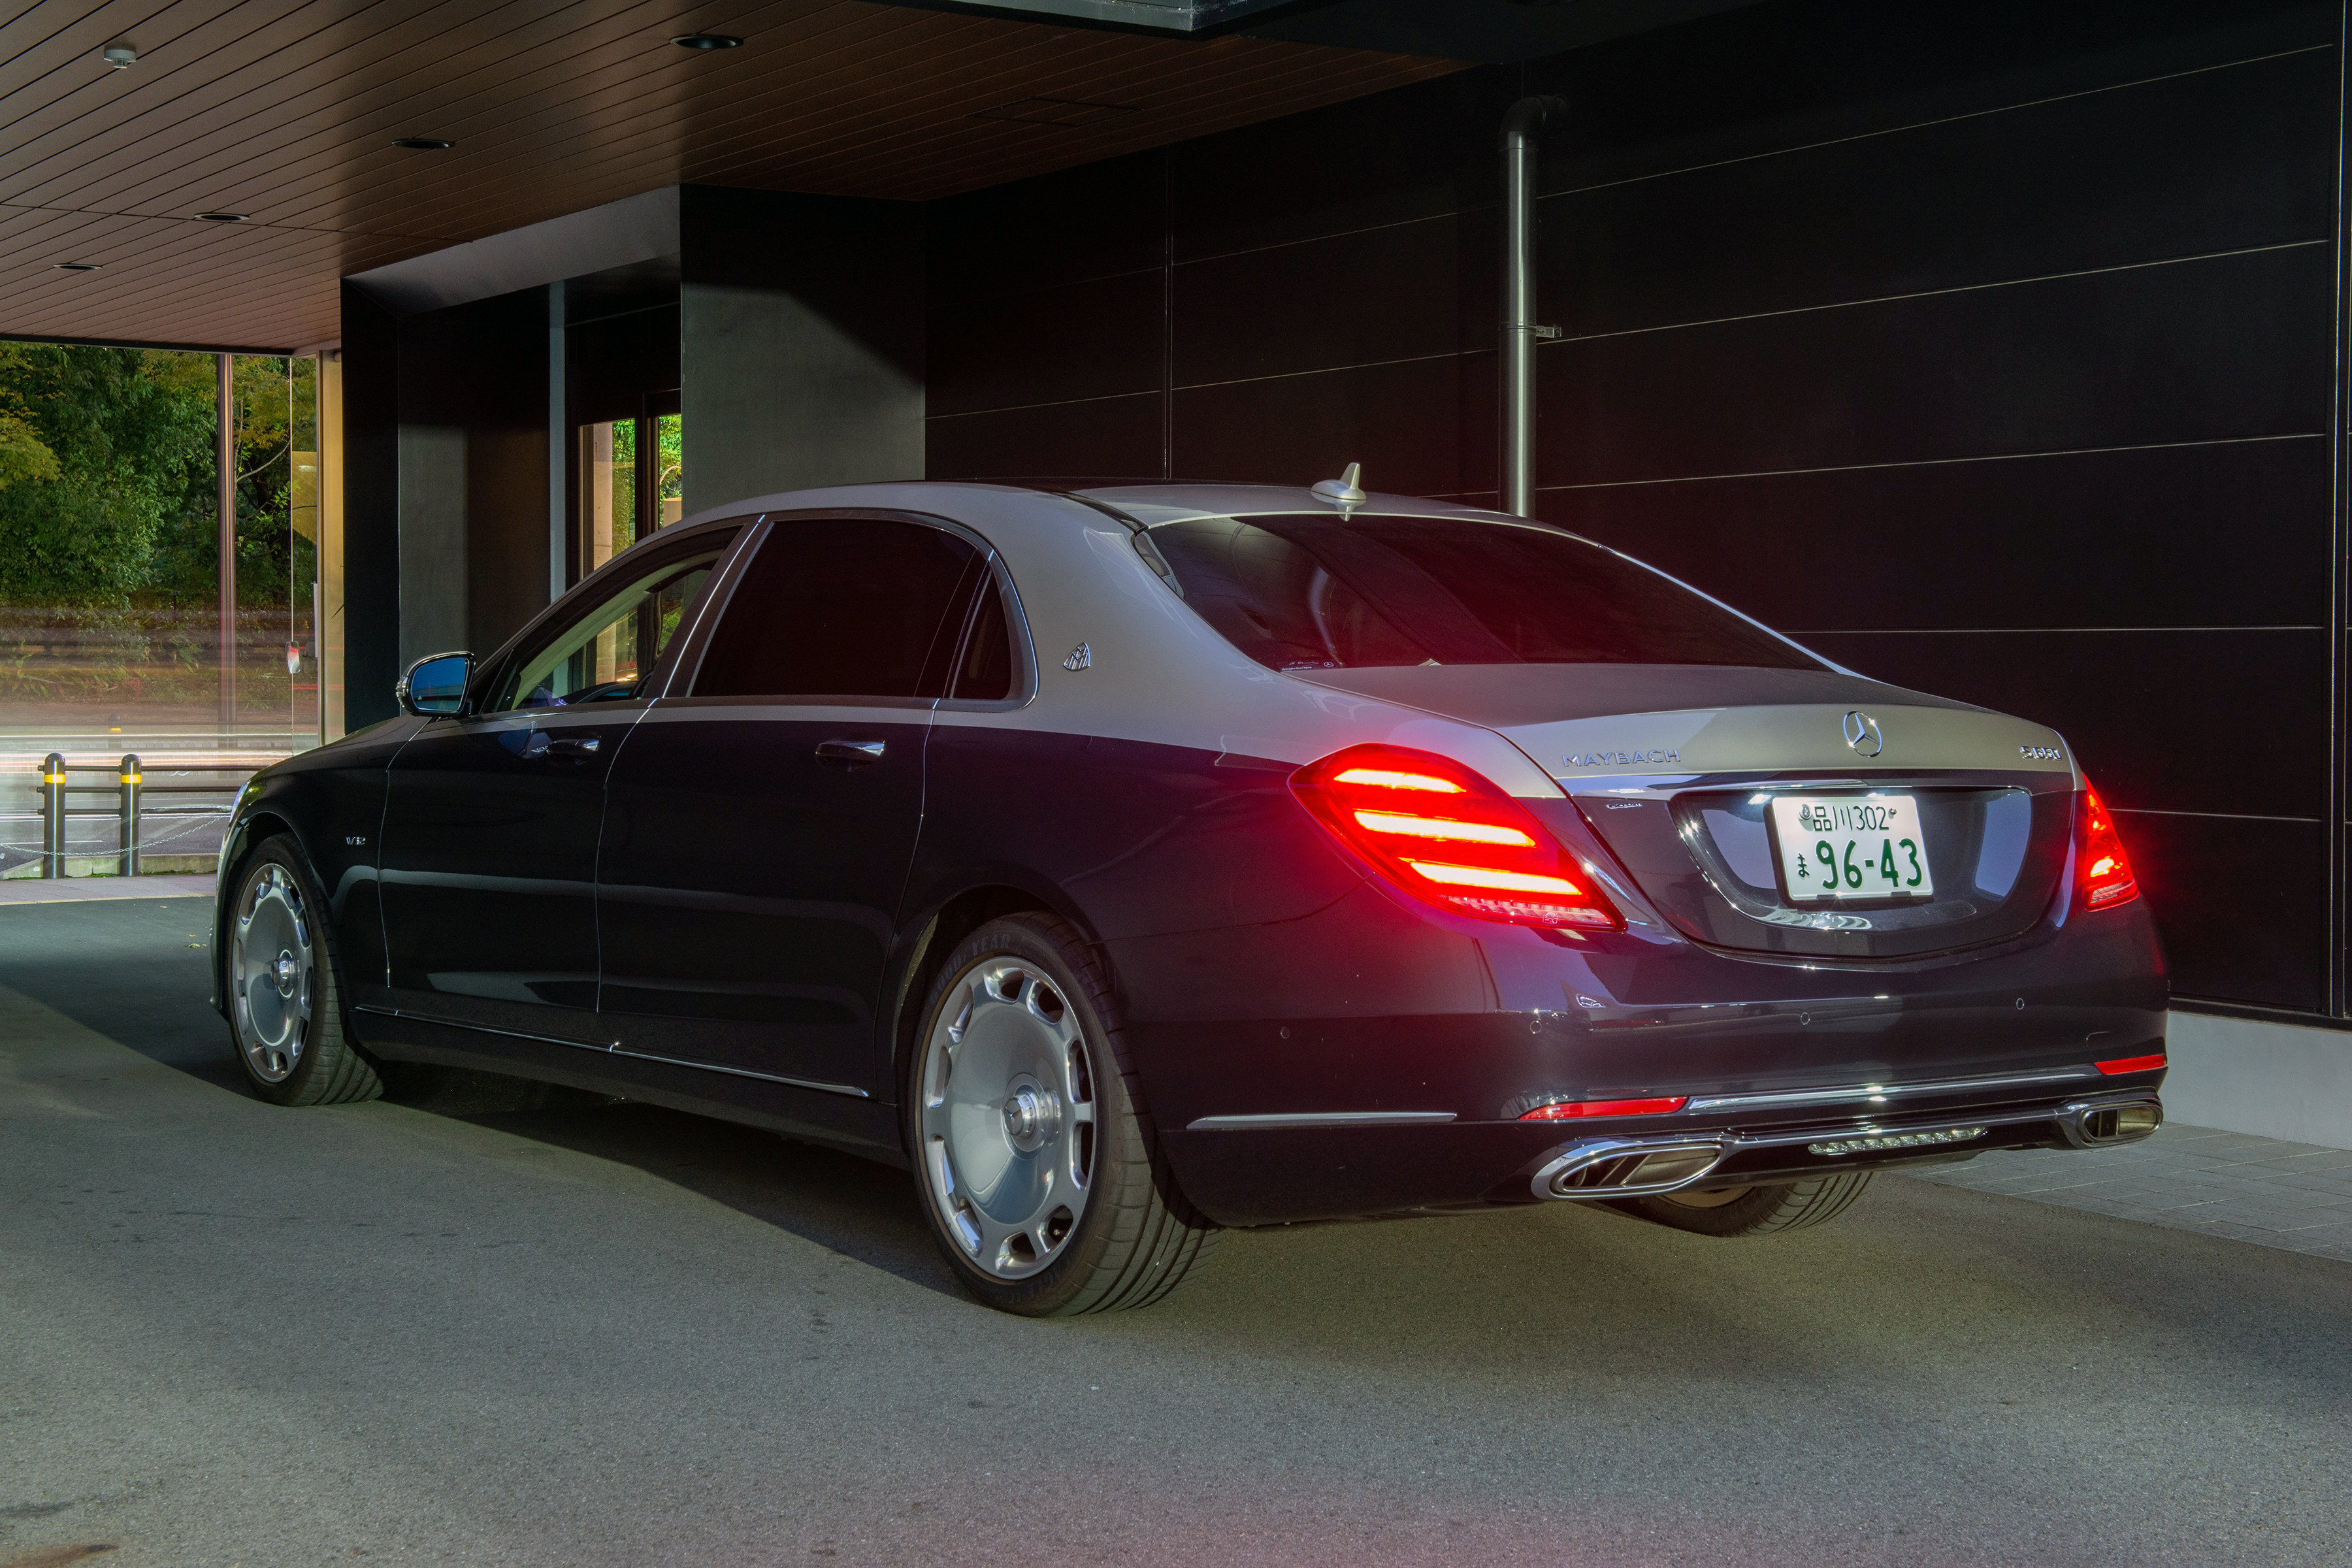 Mercedes Maybach S-Class (X222) modern model